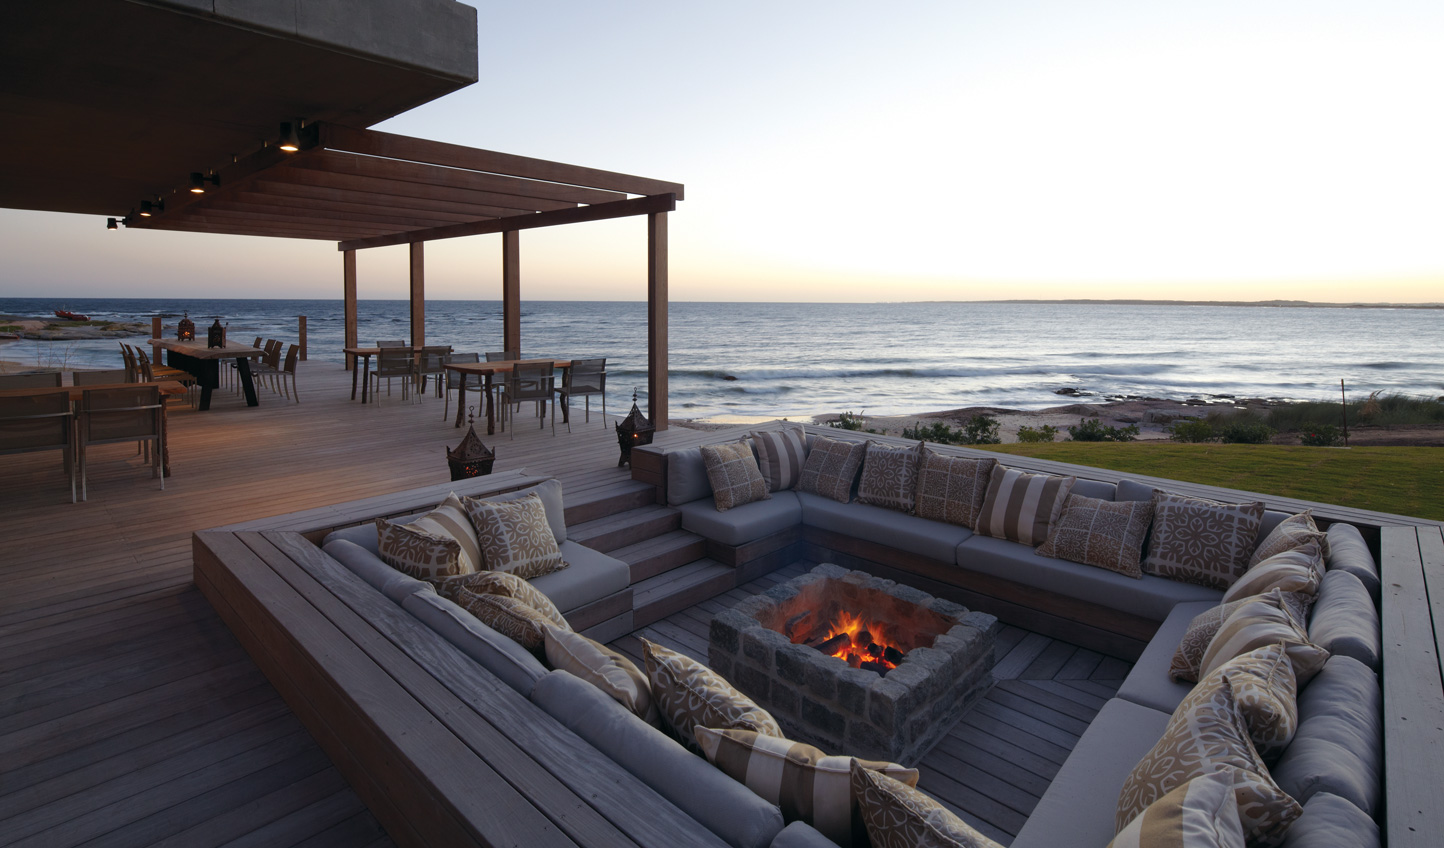 Gather around Playa Vik's firepit on a warm evening